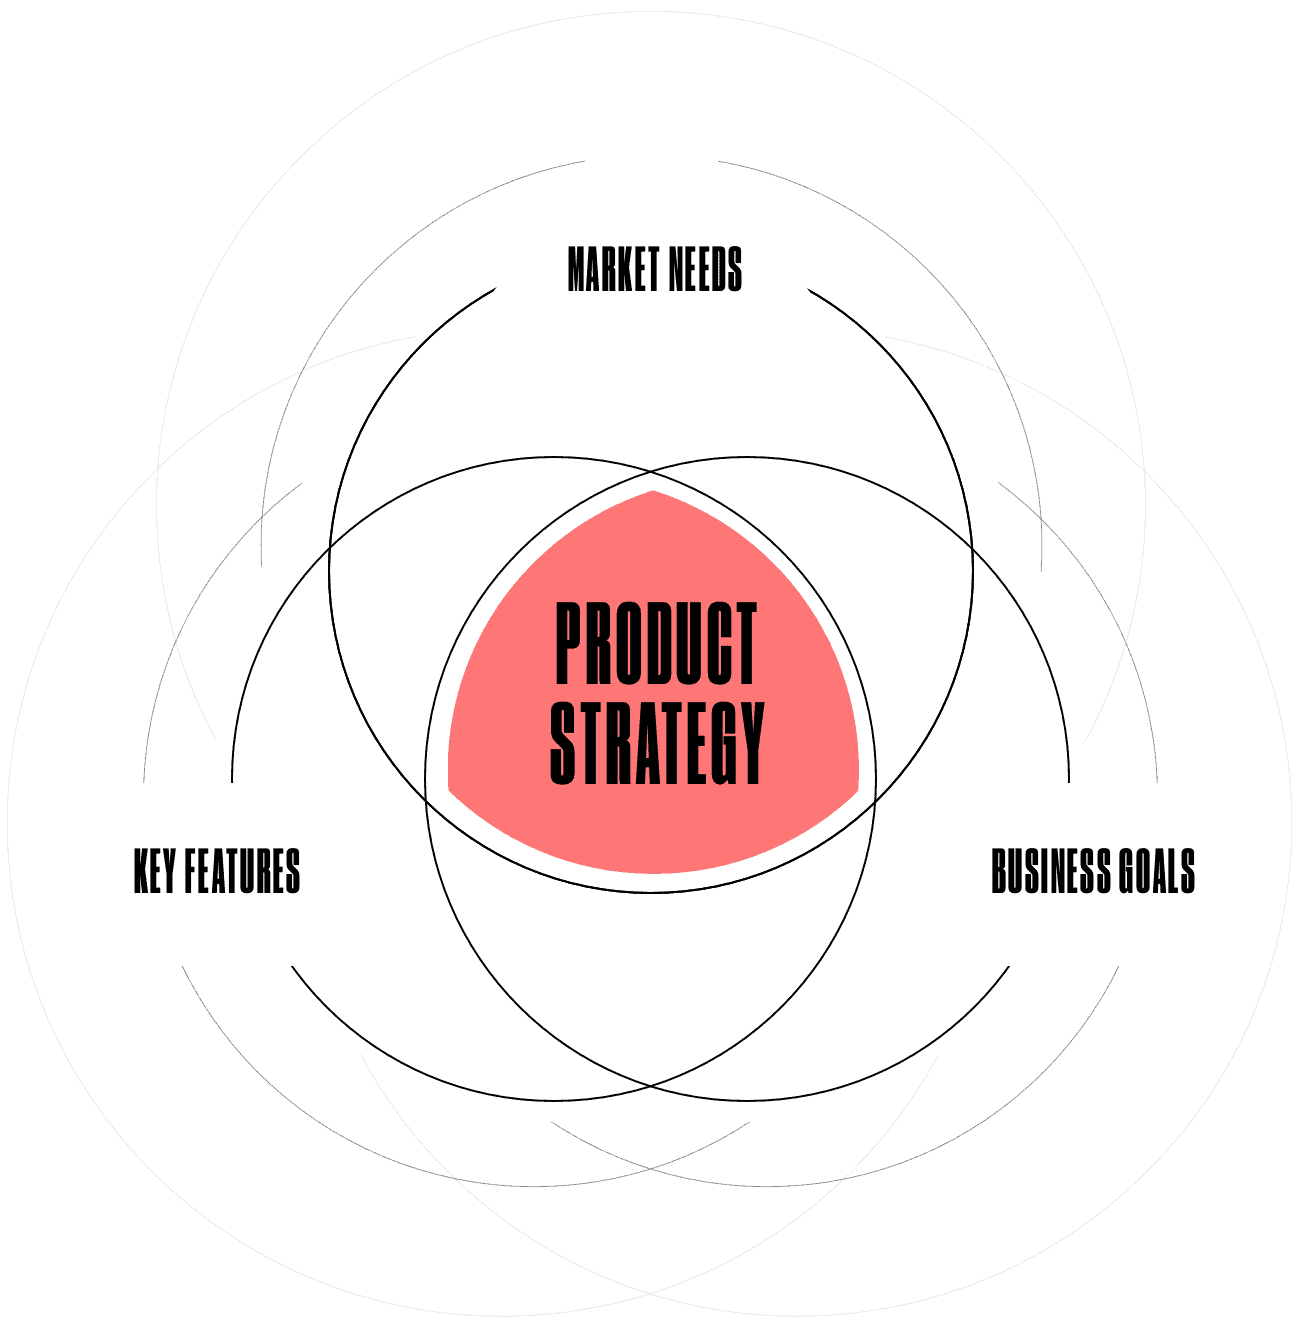 components of product strategy